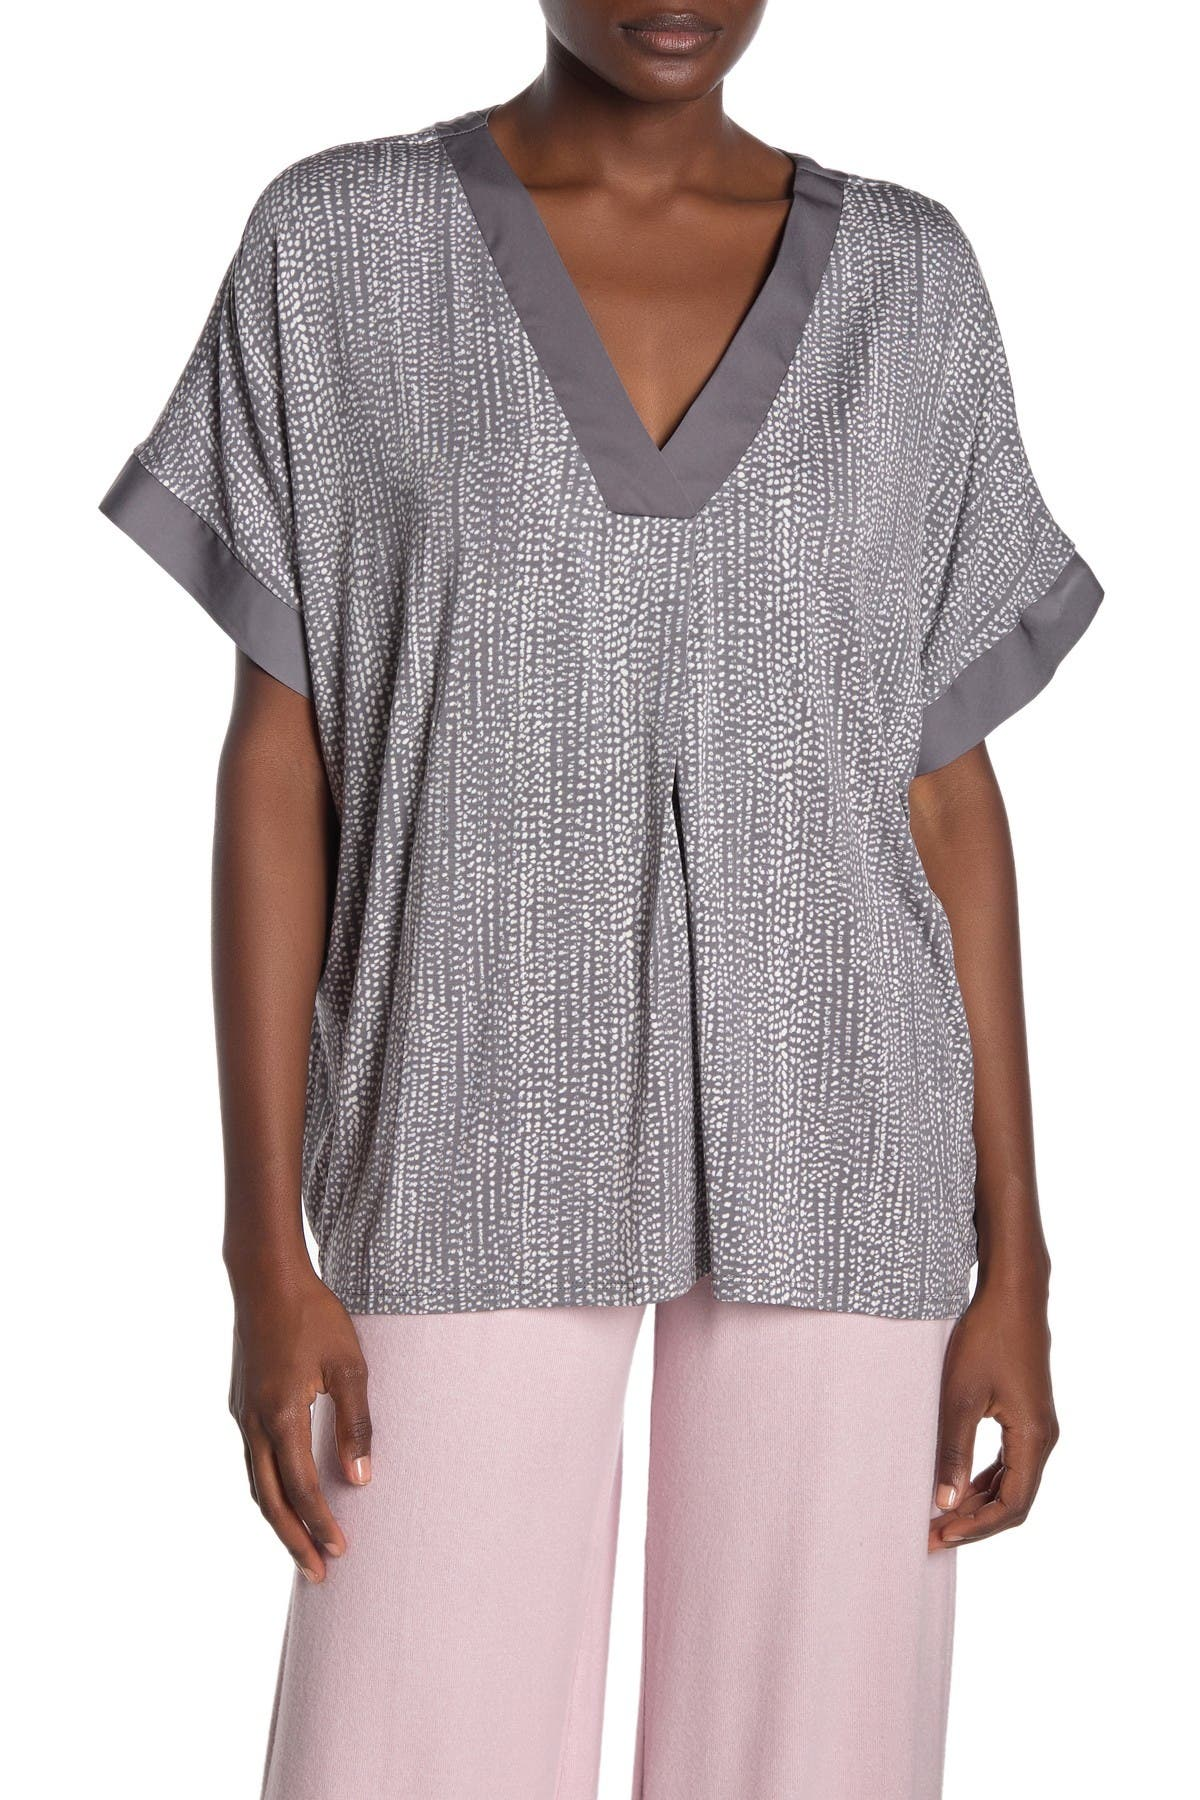 Image of Donna Karan V-Neck Elbow Sleeve Pajama Top